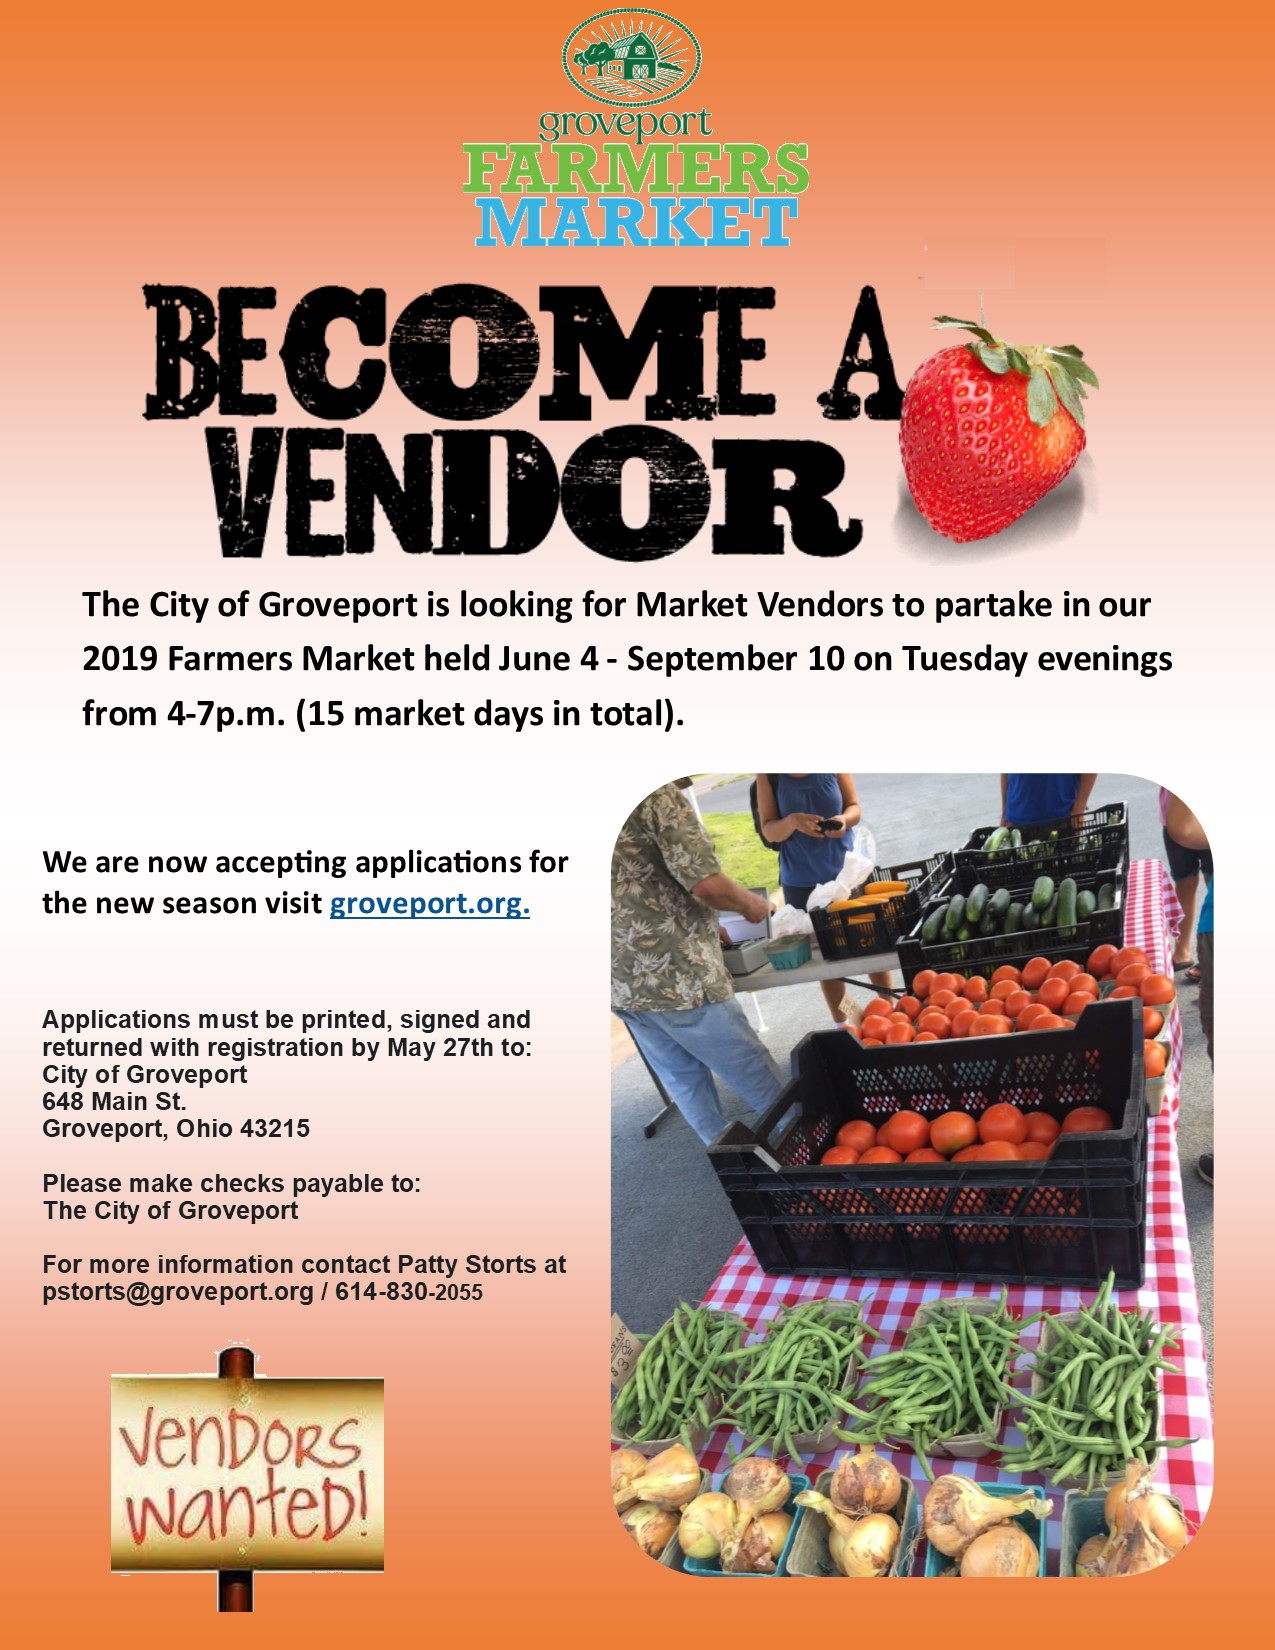 At Wednesday Farmers Market I Signed >> Regroup Groveport Community Affairs Farmers Market Vendor